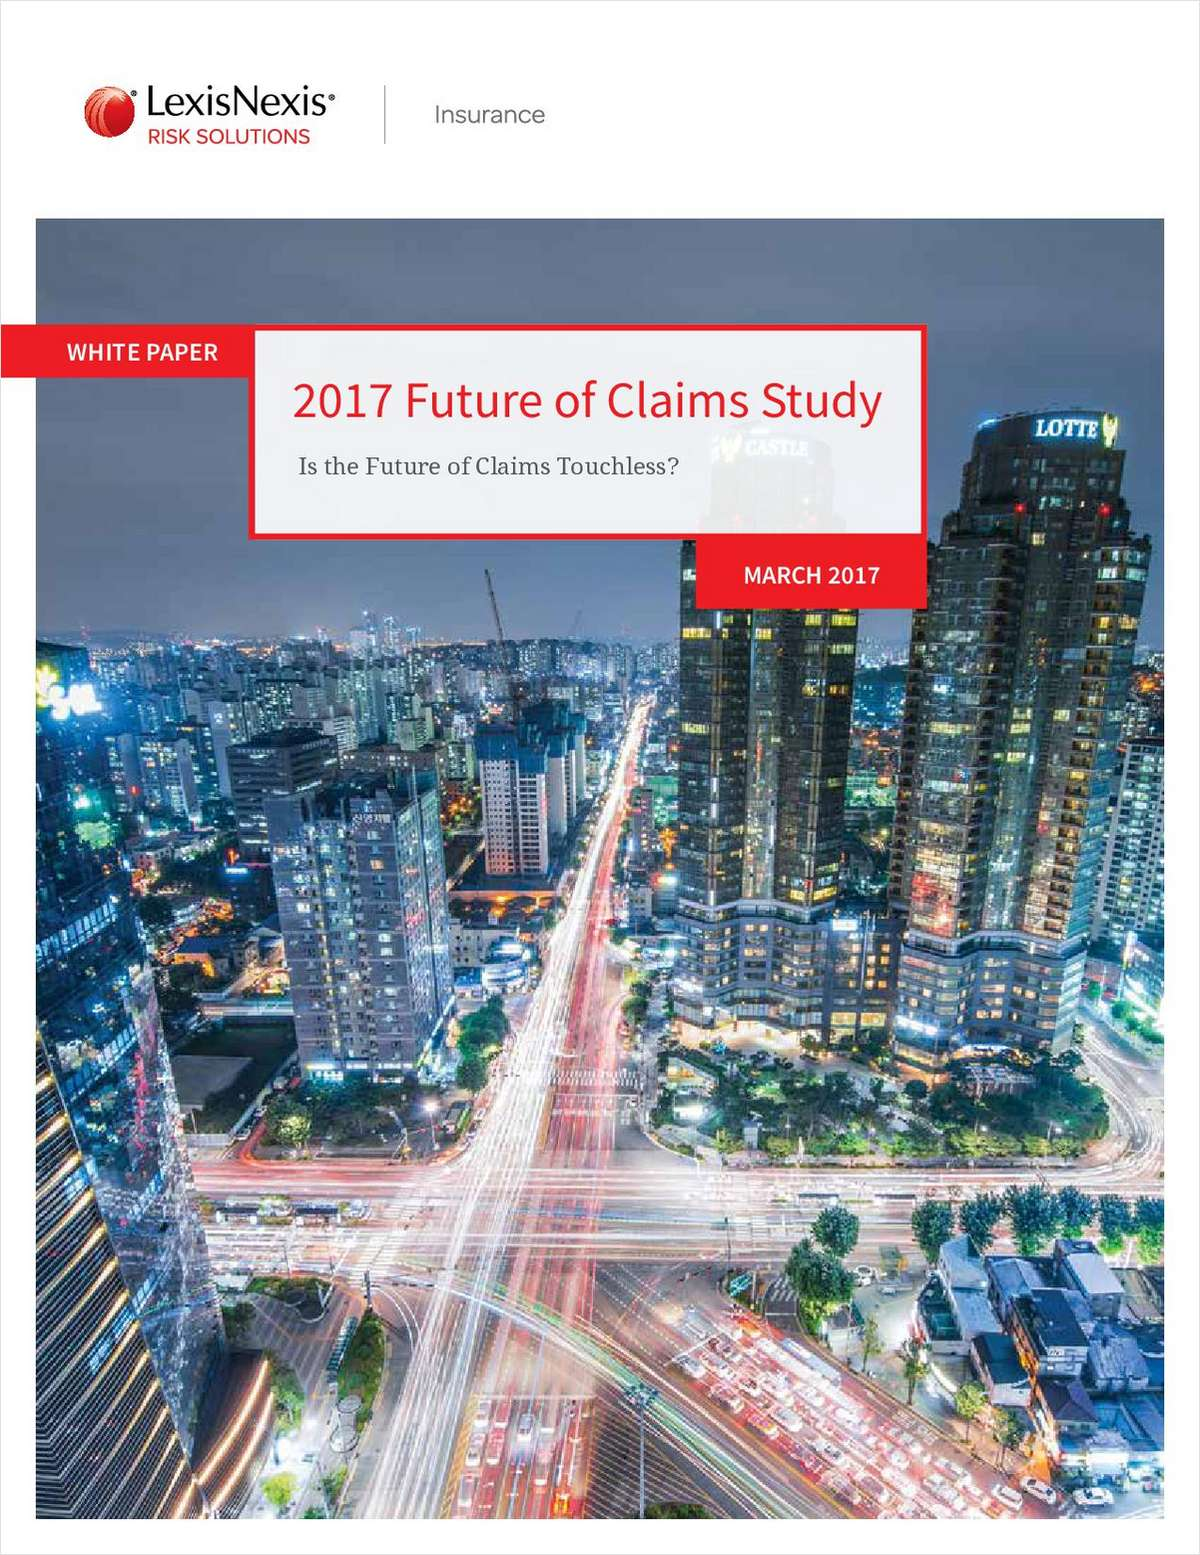 2017 Future of Claims Study: Touchless Claims